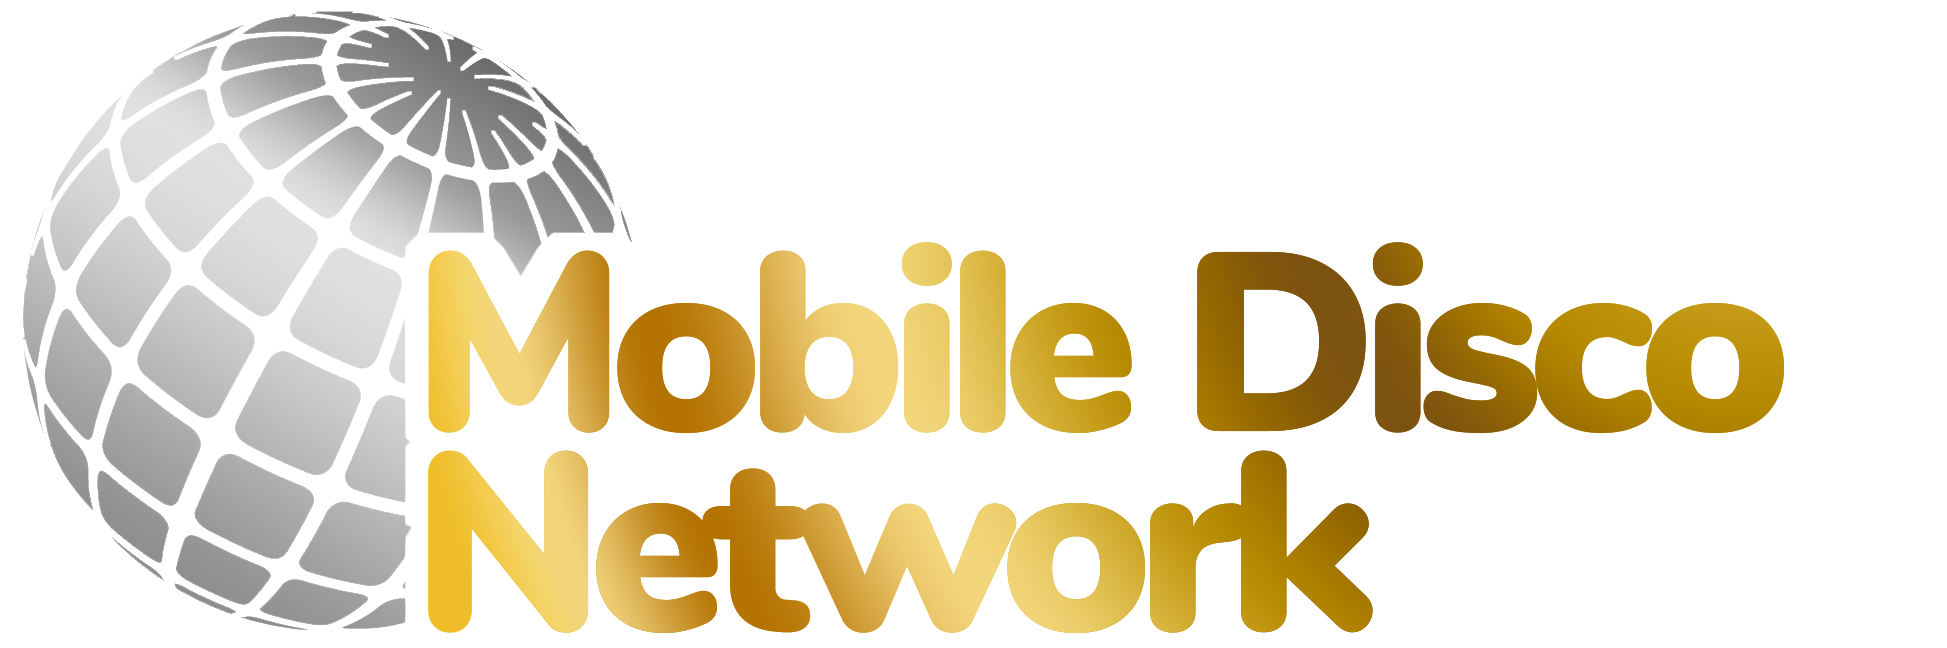 Mobile Disco Network logo